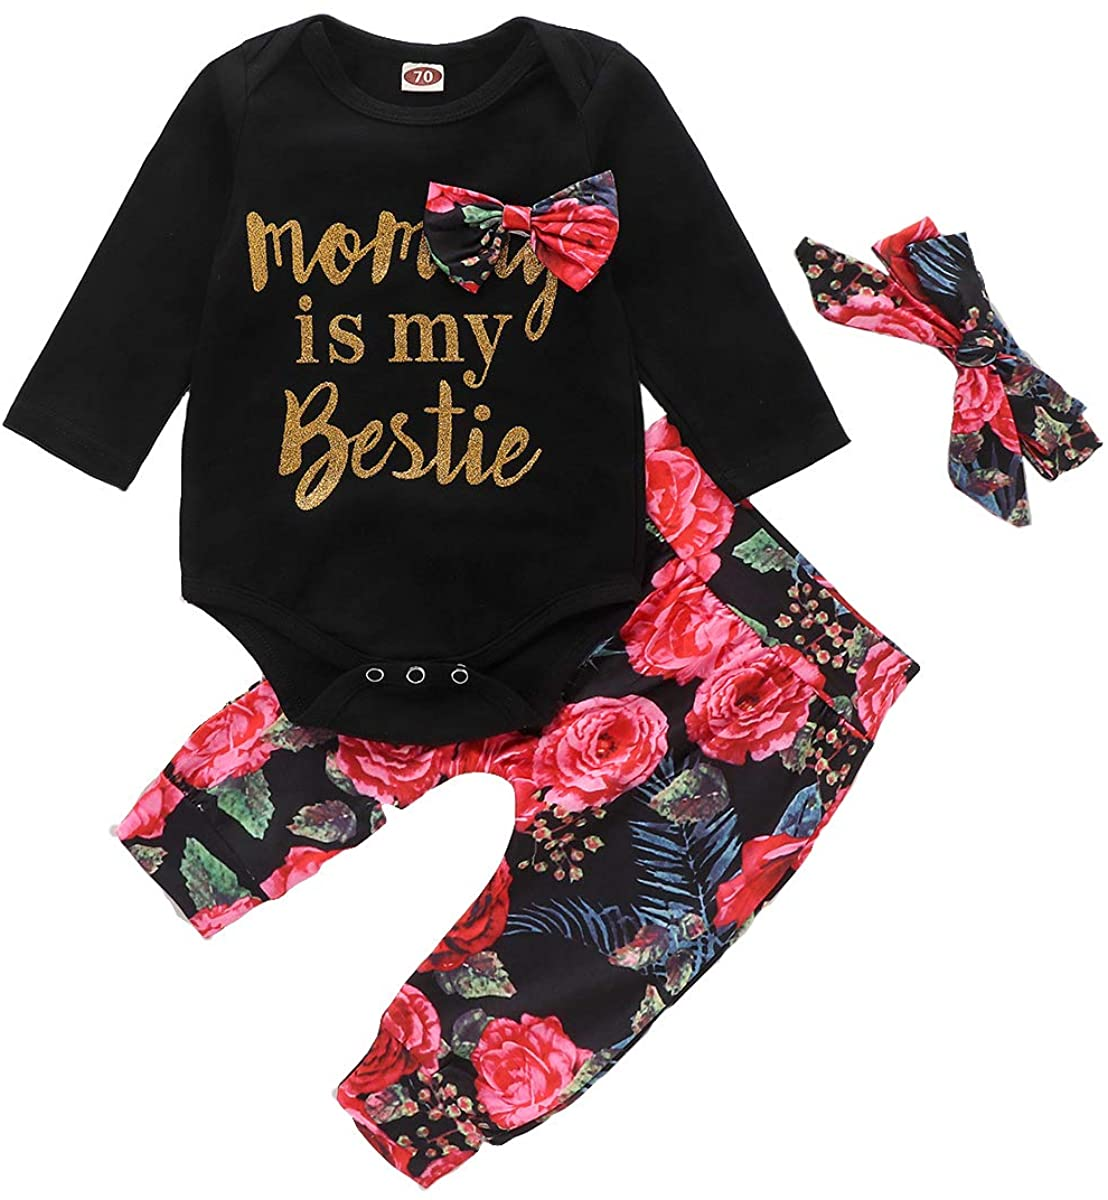 Toddler Girl Floral Clothes Set Long Sleeve Gold Letter Print Romper Long Pants Bowknot Headband 3PCS Outfits